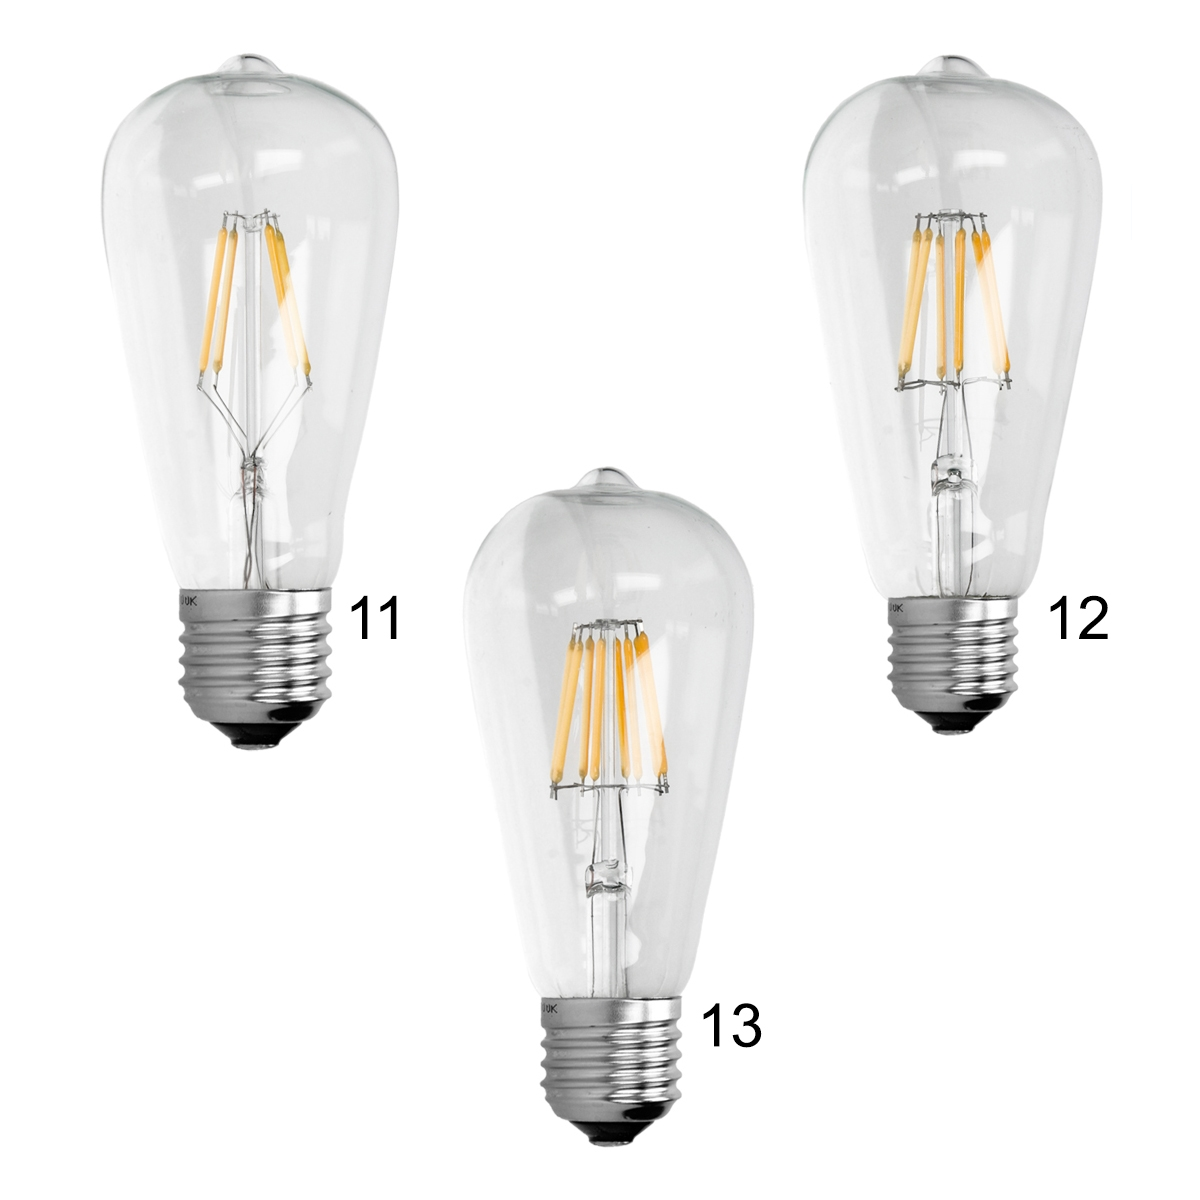 e14 e27 led lampe 2w 4w 6w 8w 10w kerze birne windsto retro vintage filament ebay. Black Bedroom Furniture Sets. Home Design Ideas